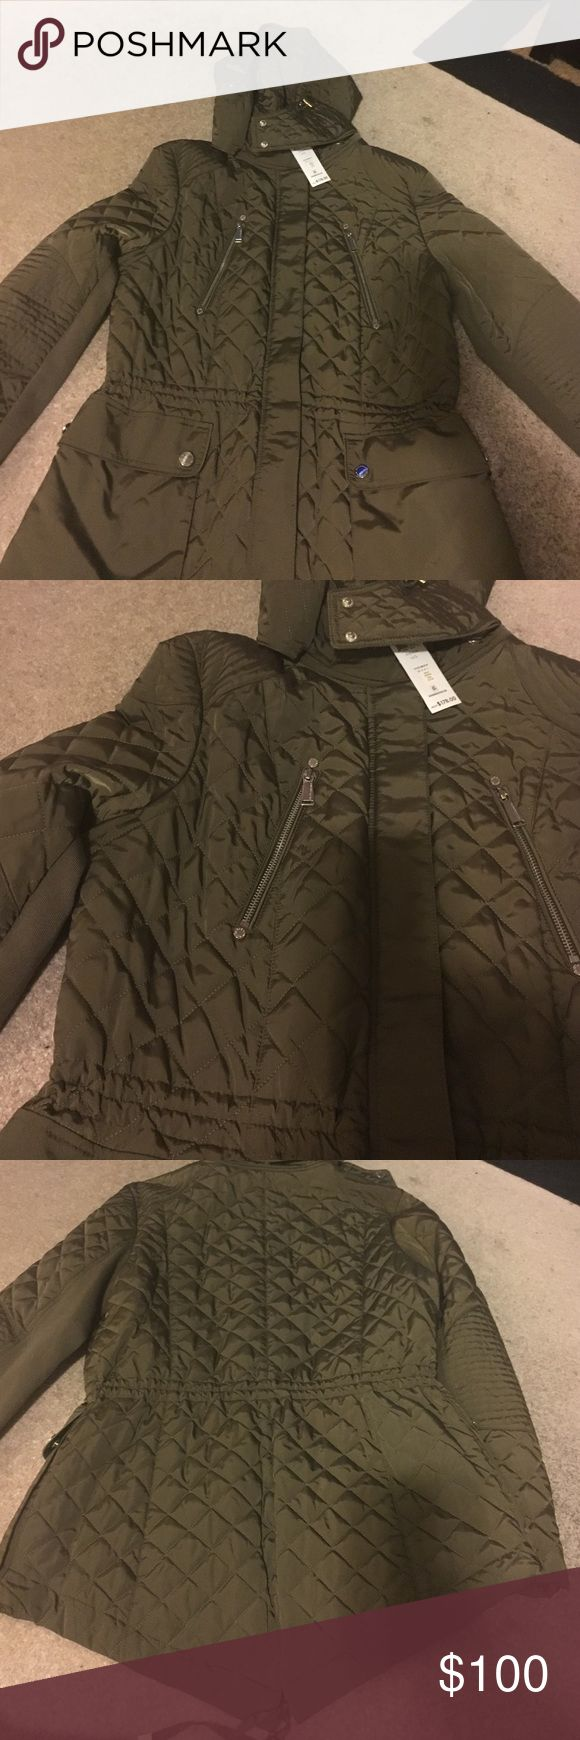 Women BCBGeneration Quilted Jacket BCBGeneration quilted jacket in Olive green. Size L. Very feminine! The back sleeve has sweater type. Has string to tighten around the waist. 4 pockets in front! Very cute BCBGeneration Jackets & Coats Utility Jackets